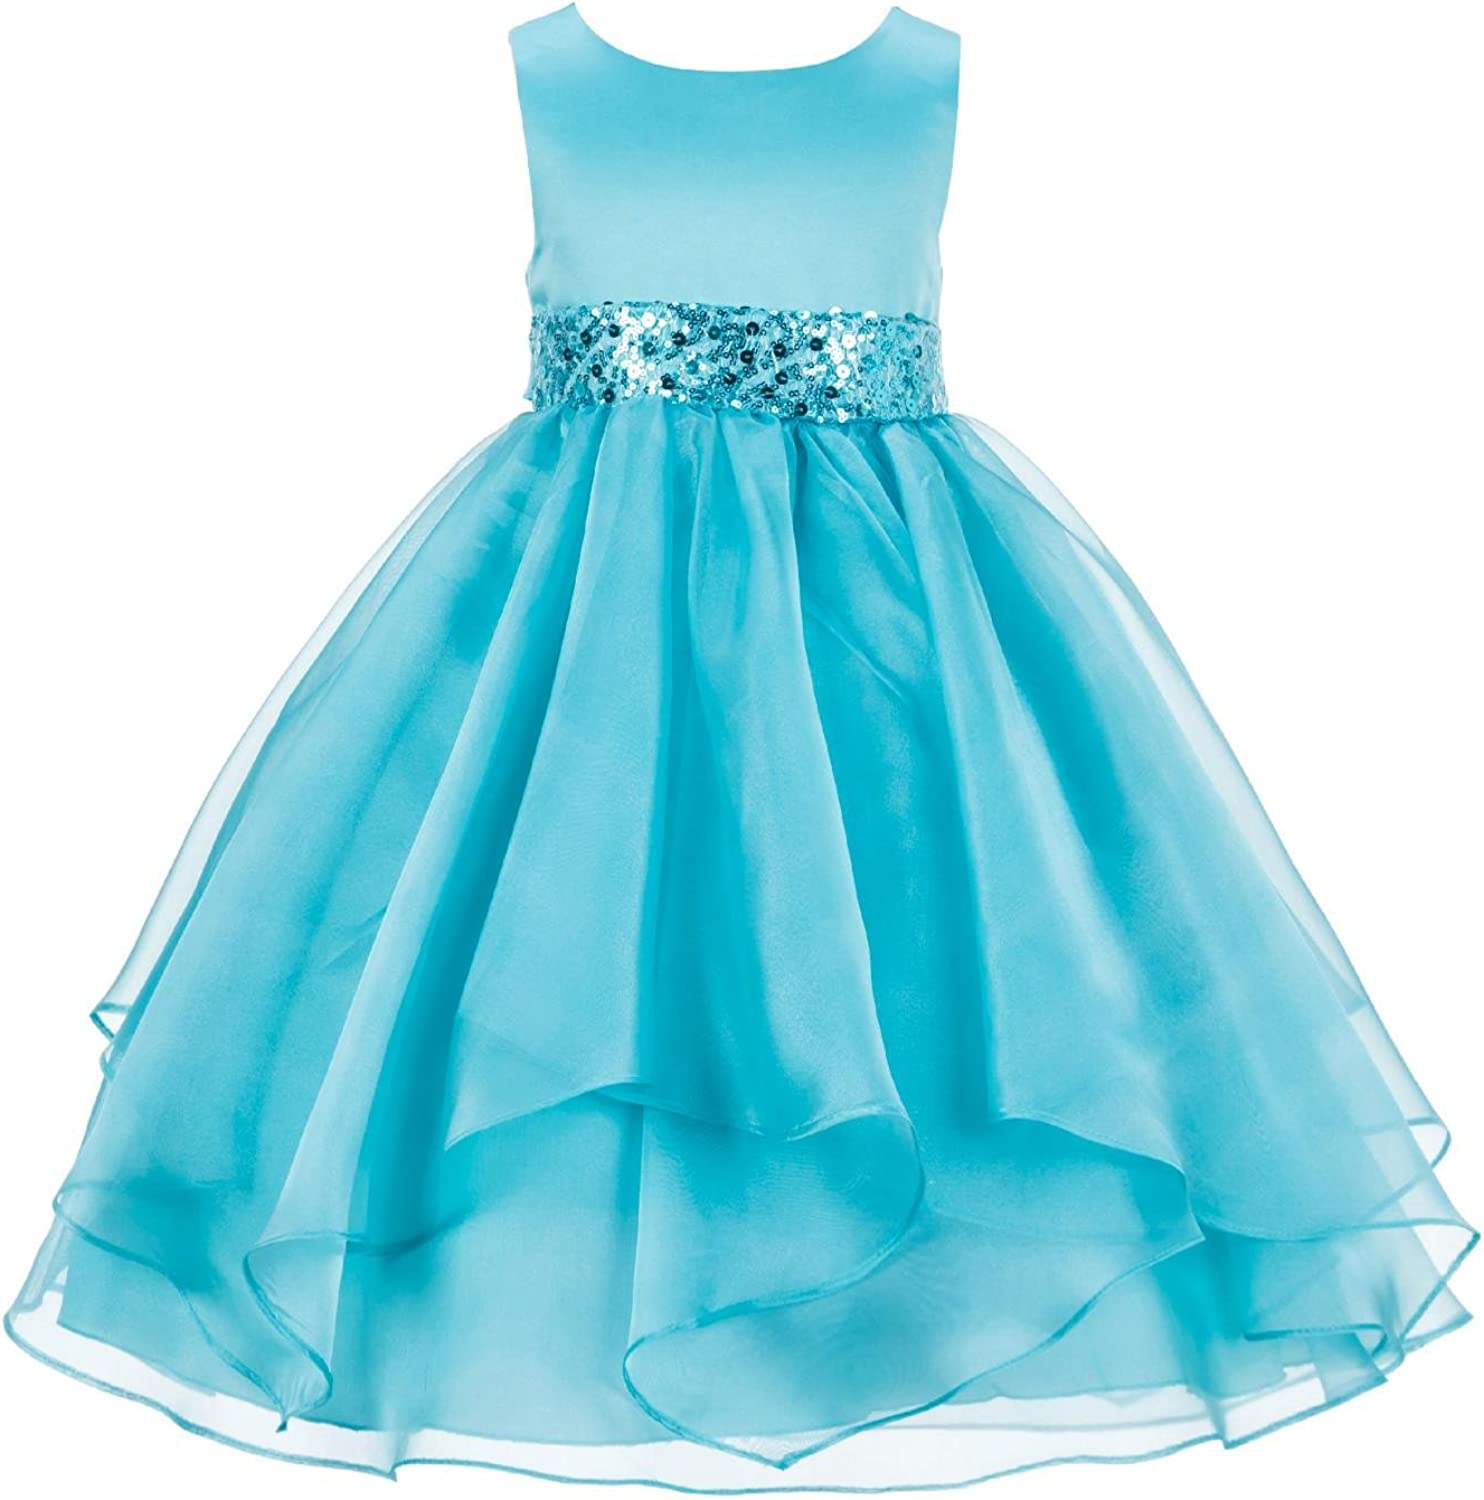 5 ☆ New Shipping Free Shipping popular ekidsbridal Organza Flower Girl Dress Pageant Special Occas Gown